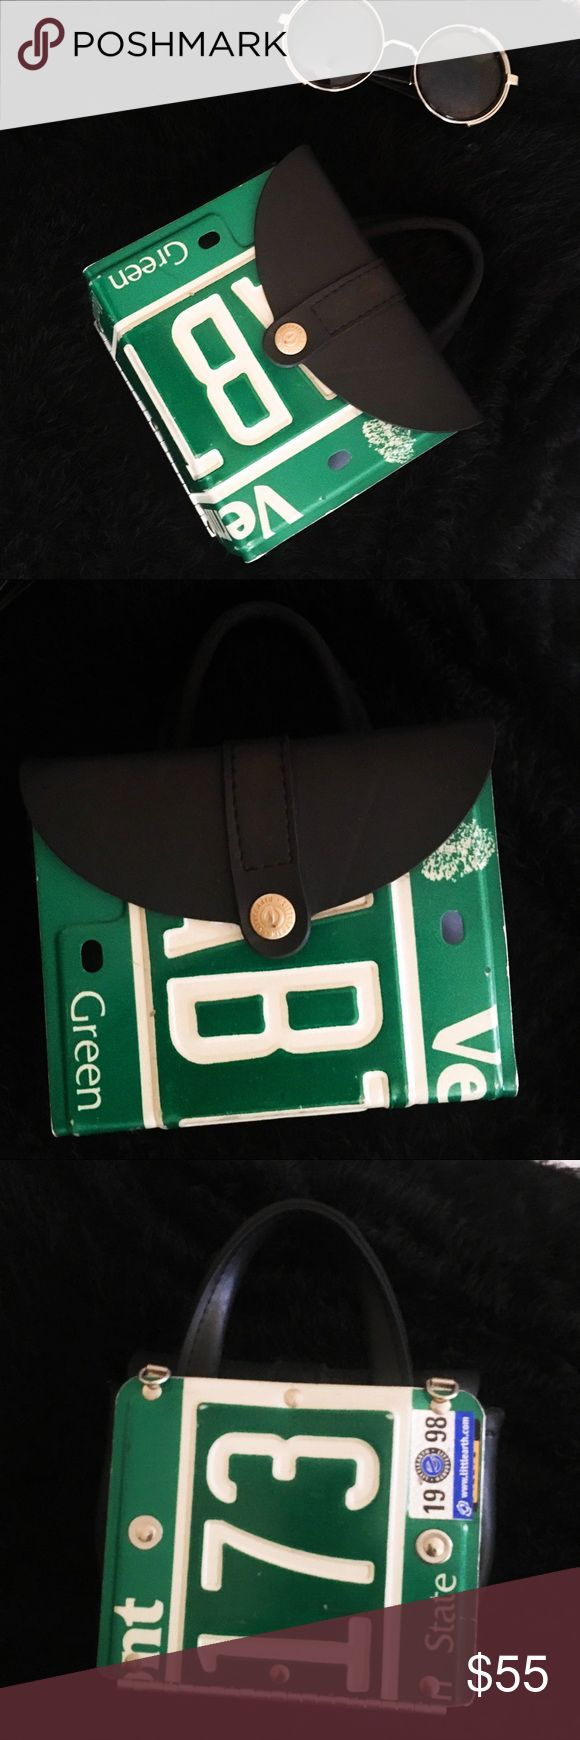 Little Earth Recycled License Plate Mini Purse This Purse has a story, and has a lot of love. Was given to me as a gift from a best friend I am no longer best friends with 😞 was given with love, received with love, I've worn it everywhere and it never fails to catch people's attention! Vermont license plate. This is truly special to me, but it deserves to continue to be loved. Make an offer! Little Earth Bags Mini Bags